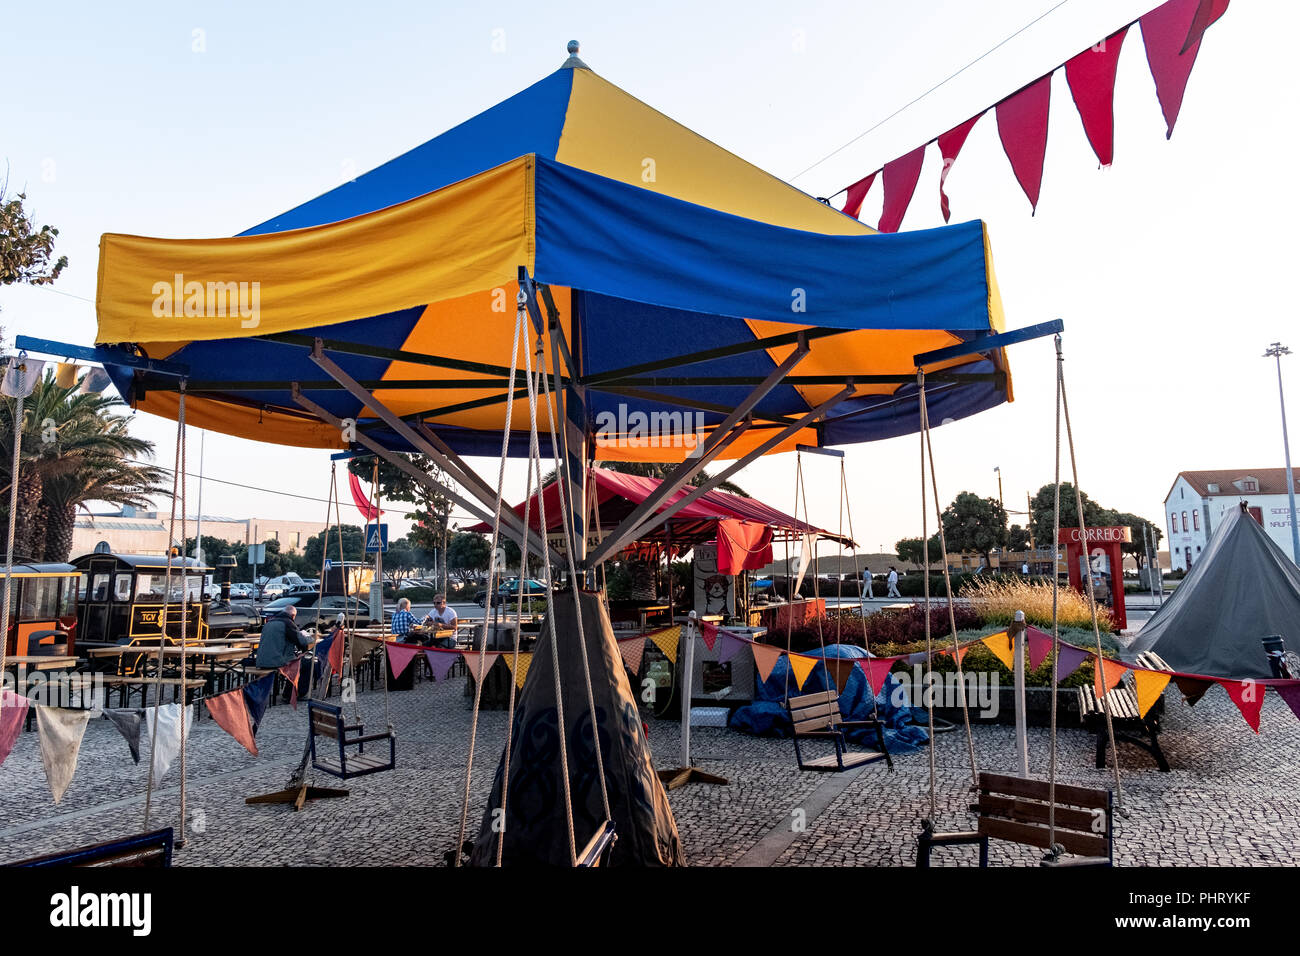 Medieval fair in Portugal - Stock Image